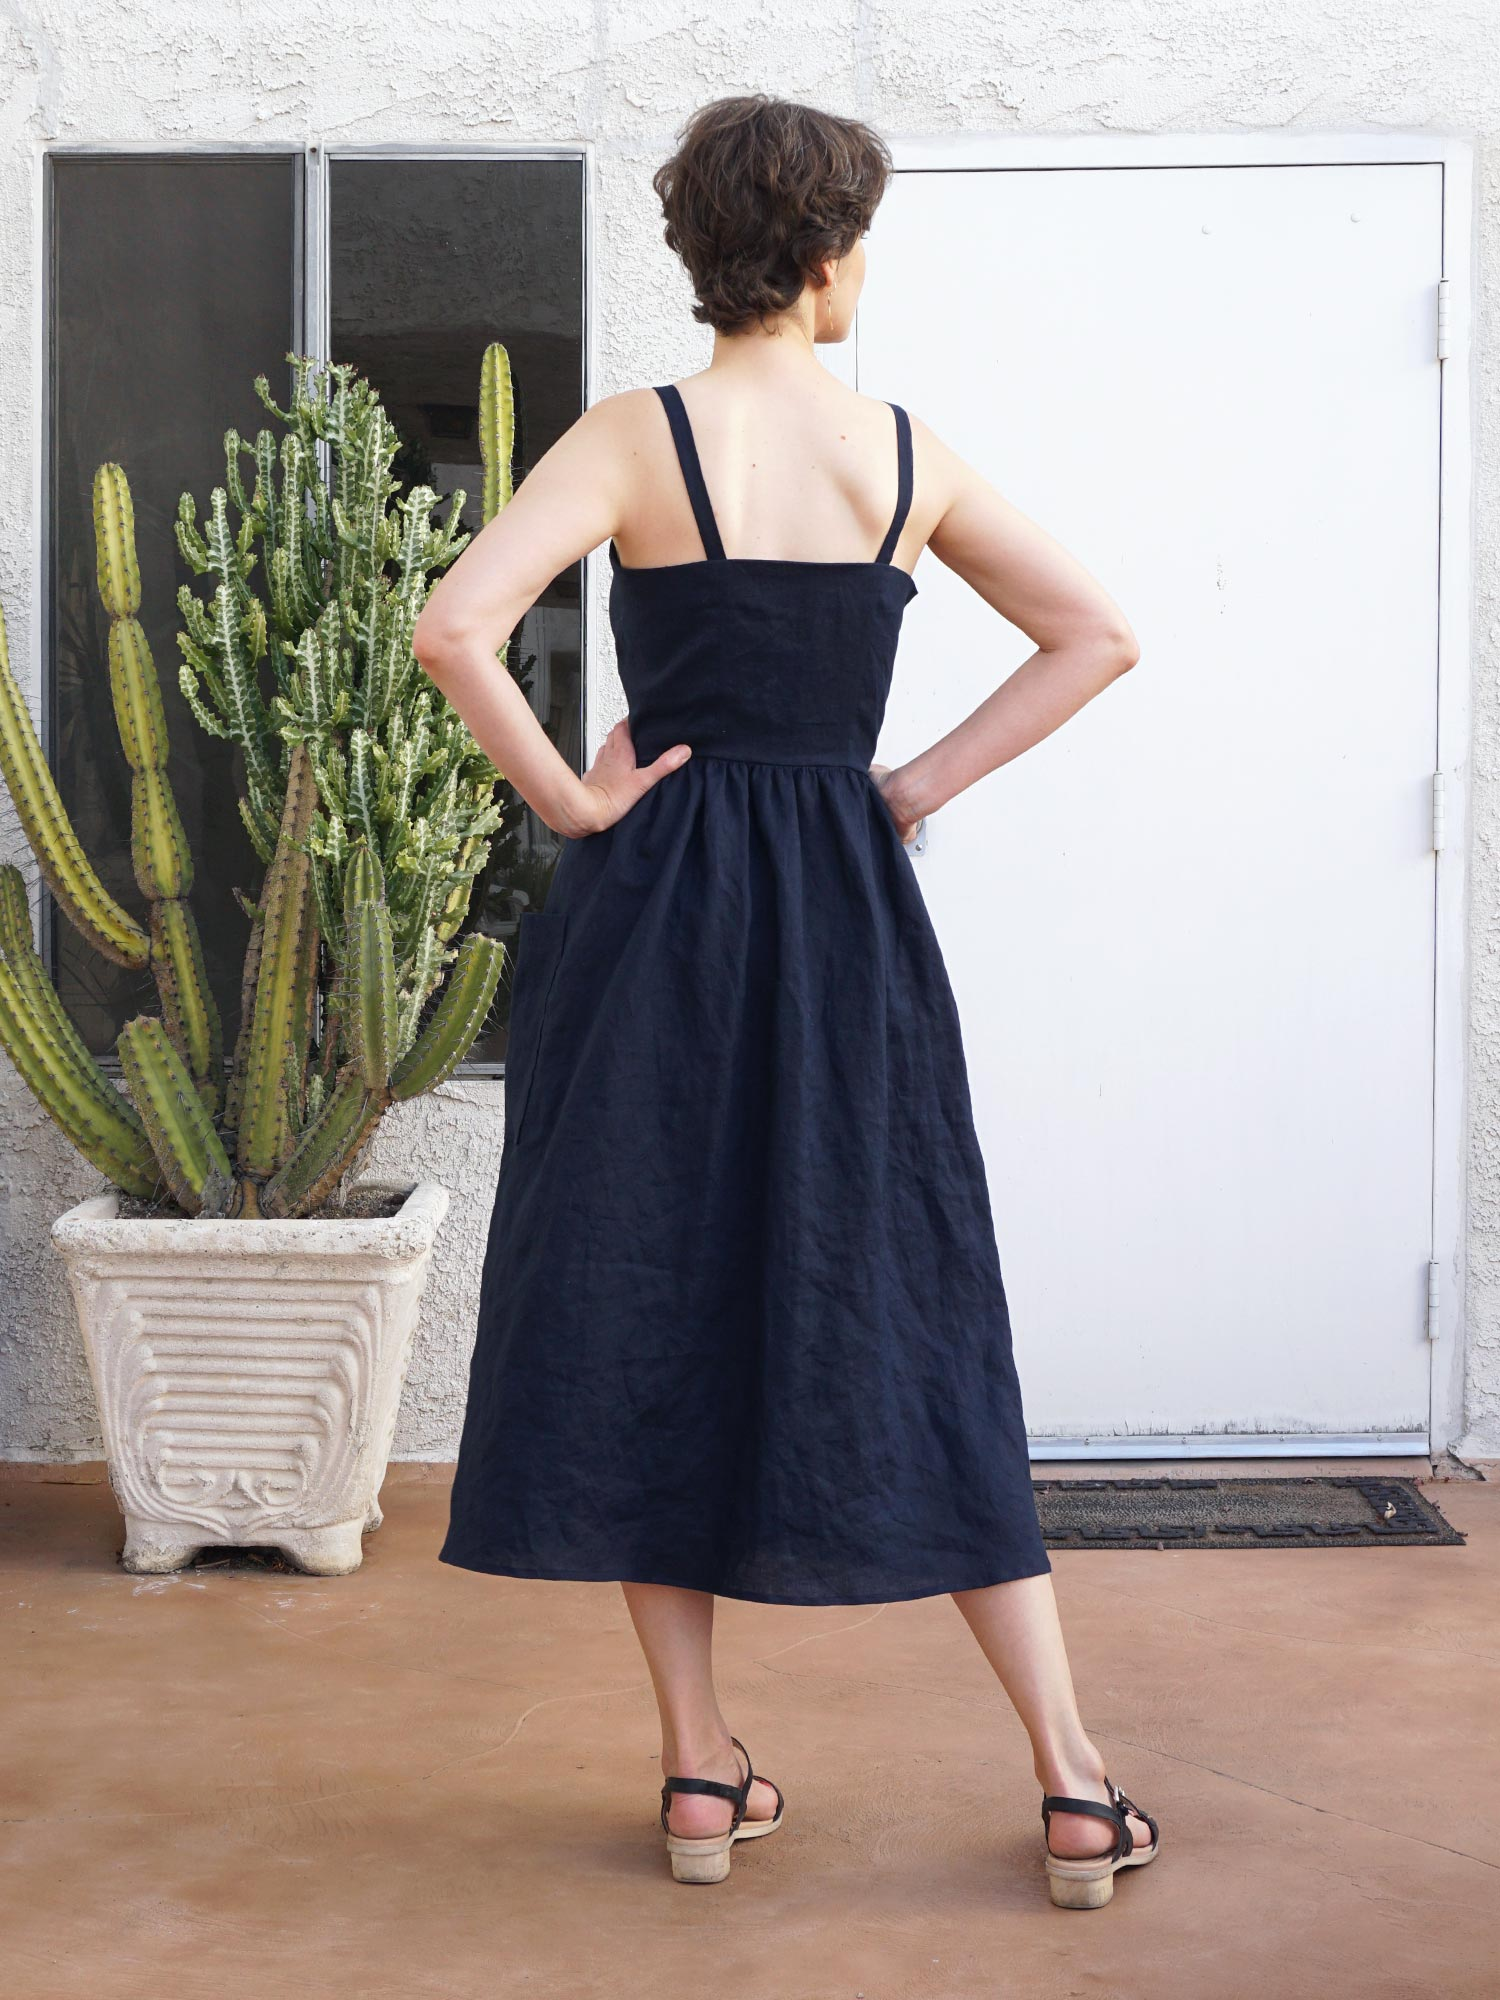 DIY Sweetheart Dress – Review of the Jessica Dress by Mimi G